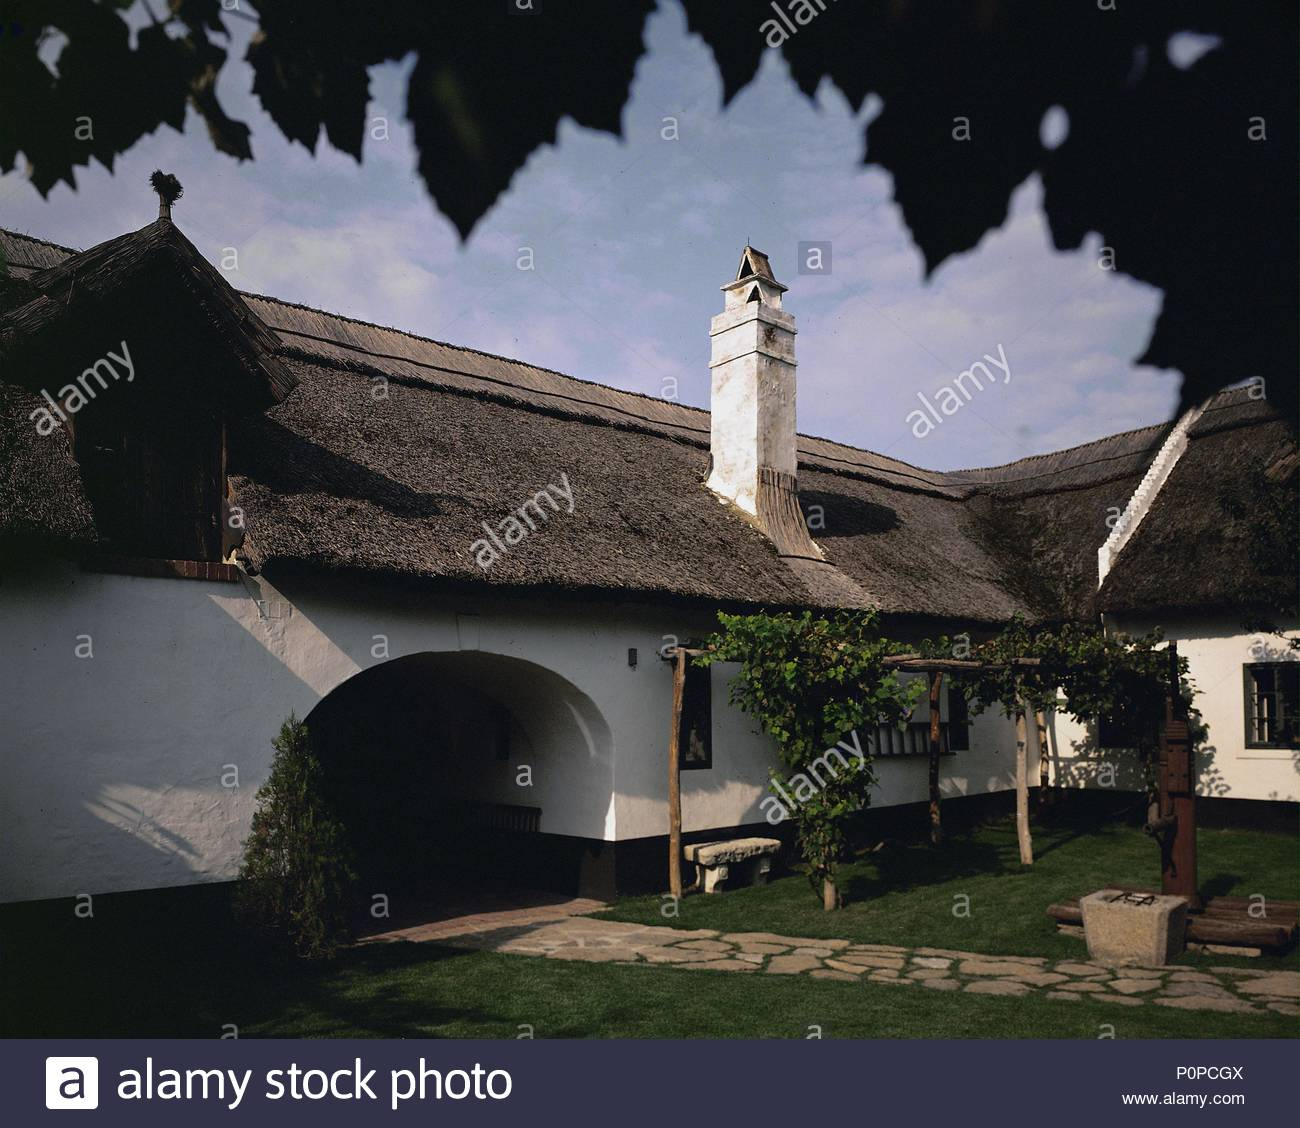 The straw-thatched farmhouse in Rohrau, Austria, where Joseph Haydn was born and where his father worked as a wheelwright. Inner courtyard. Location: Haydn Museum, Rohrau, Austria. - Stock Image